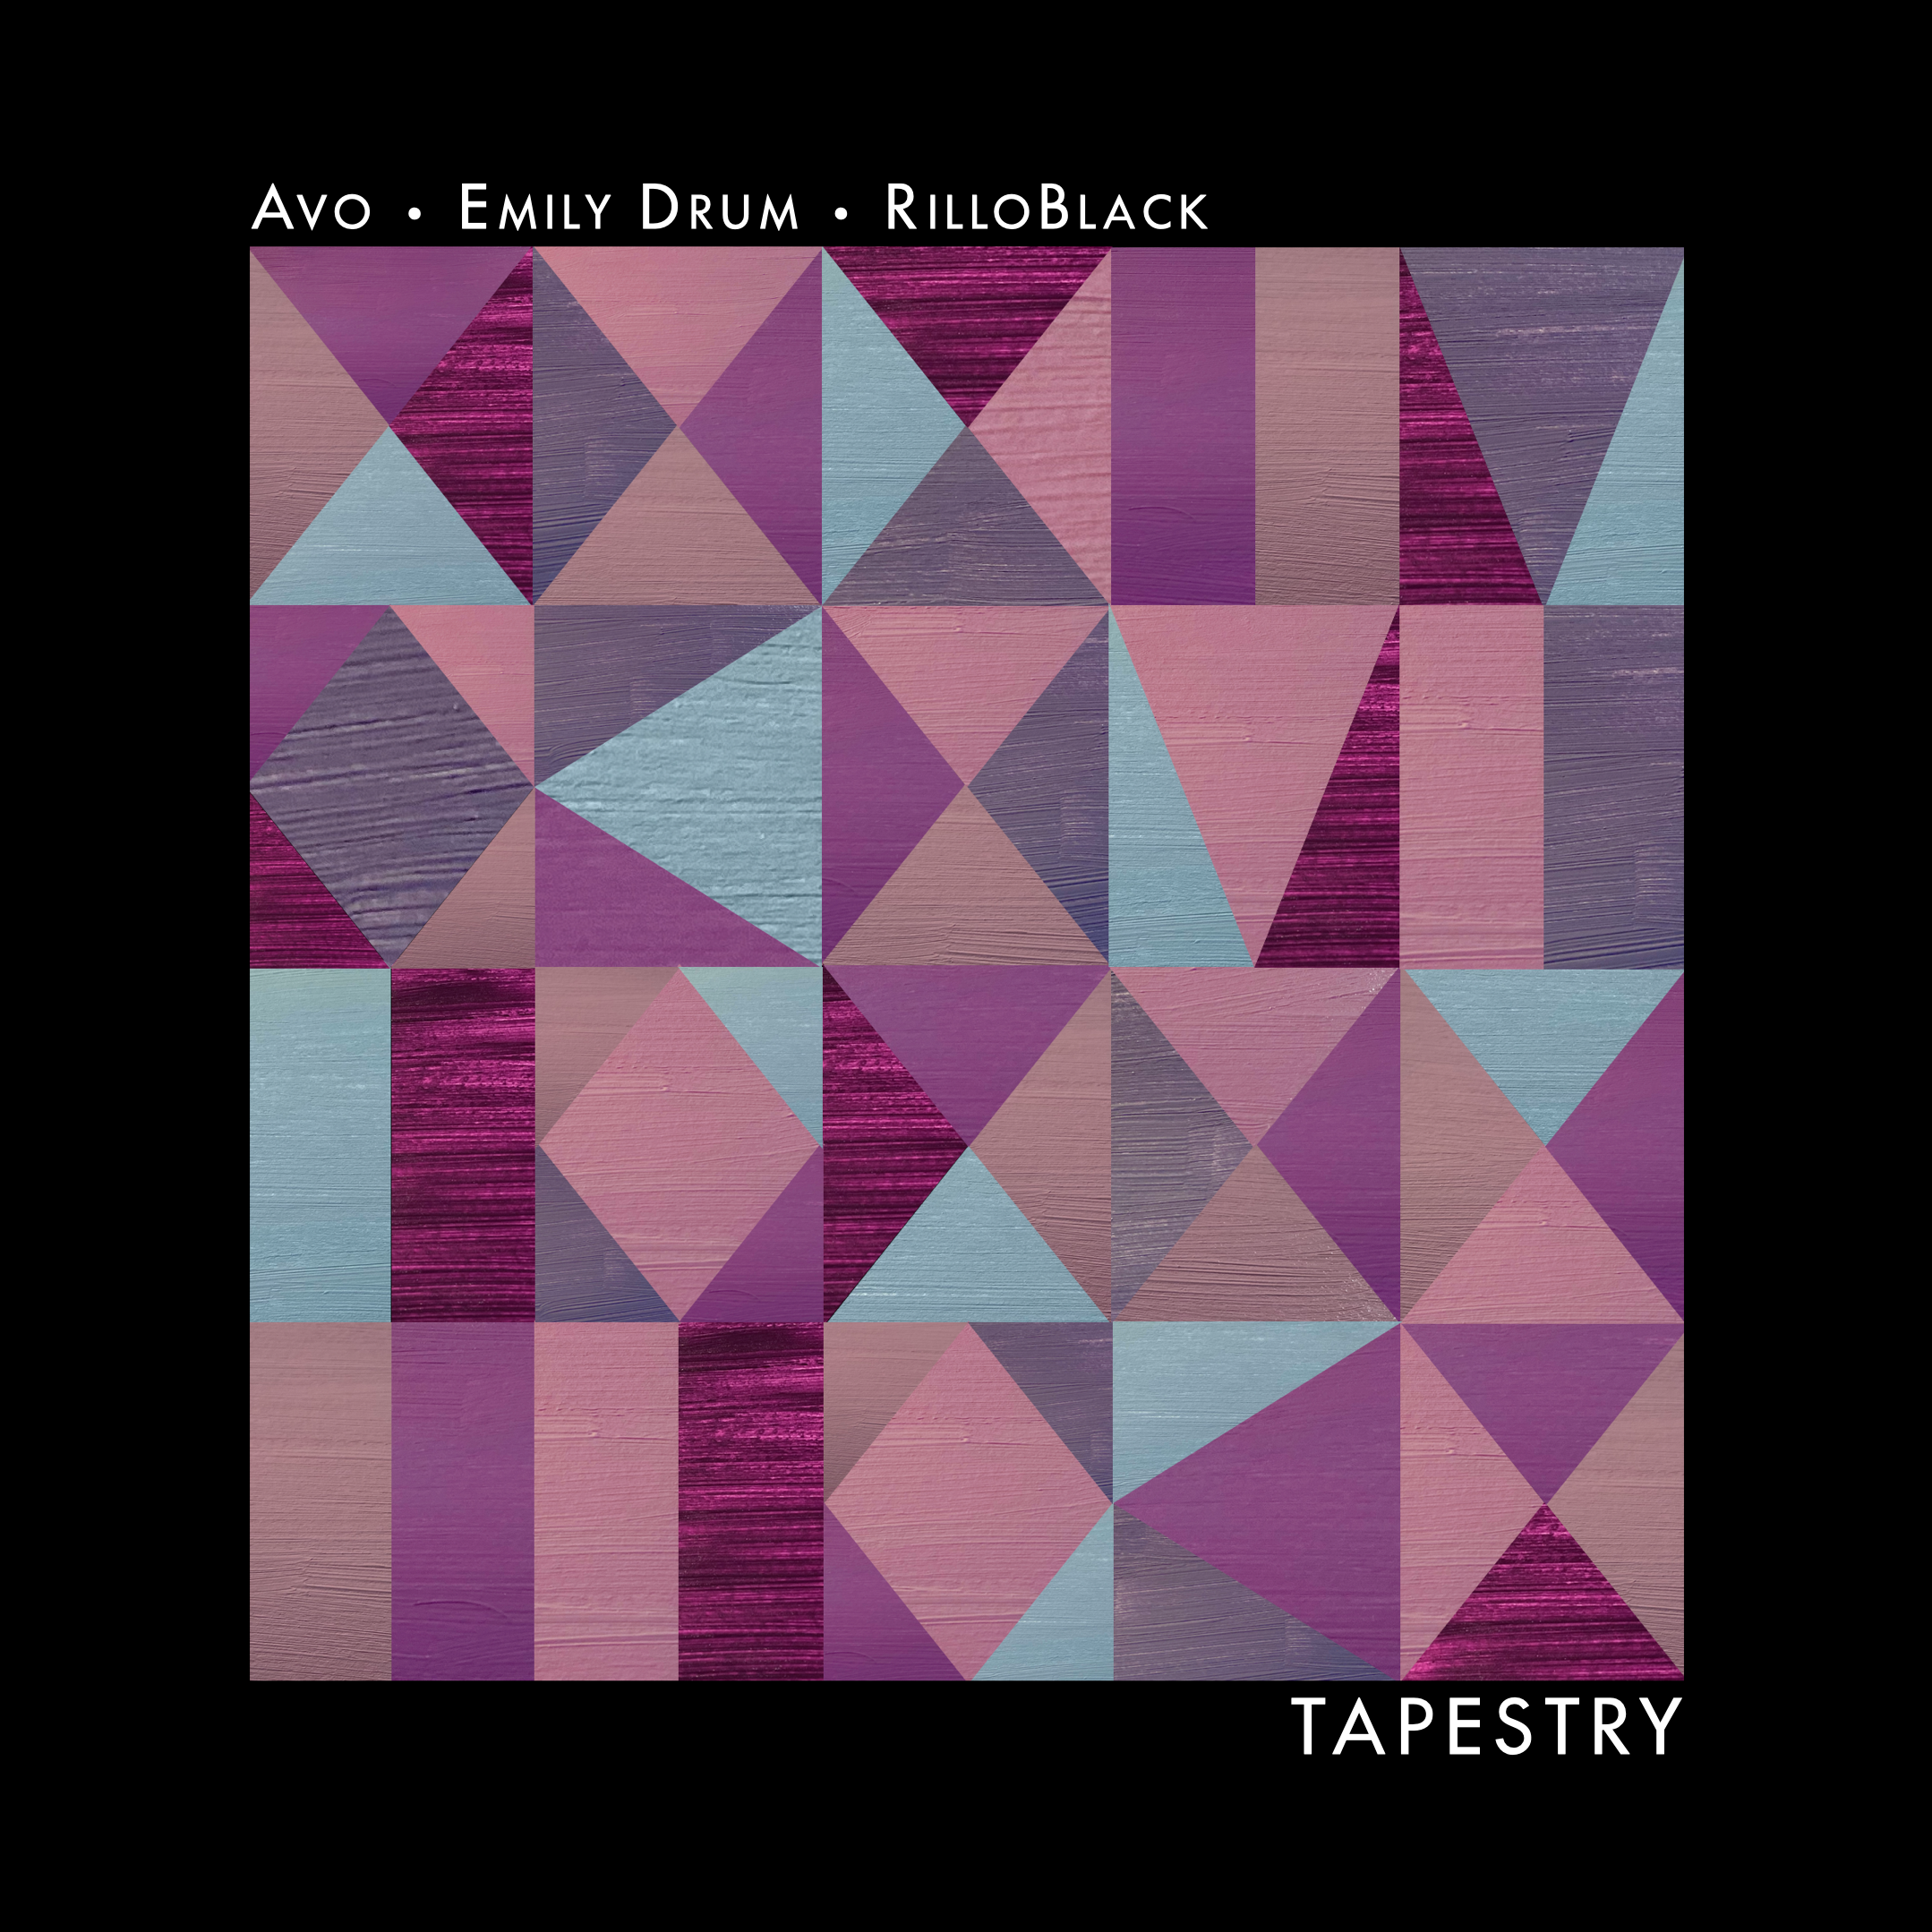 tapestry cover art ii